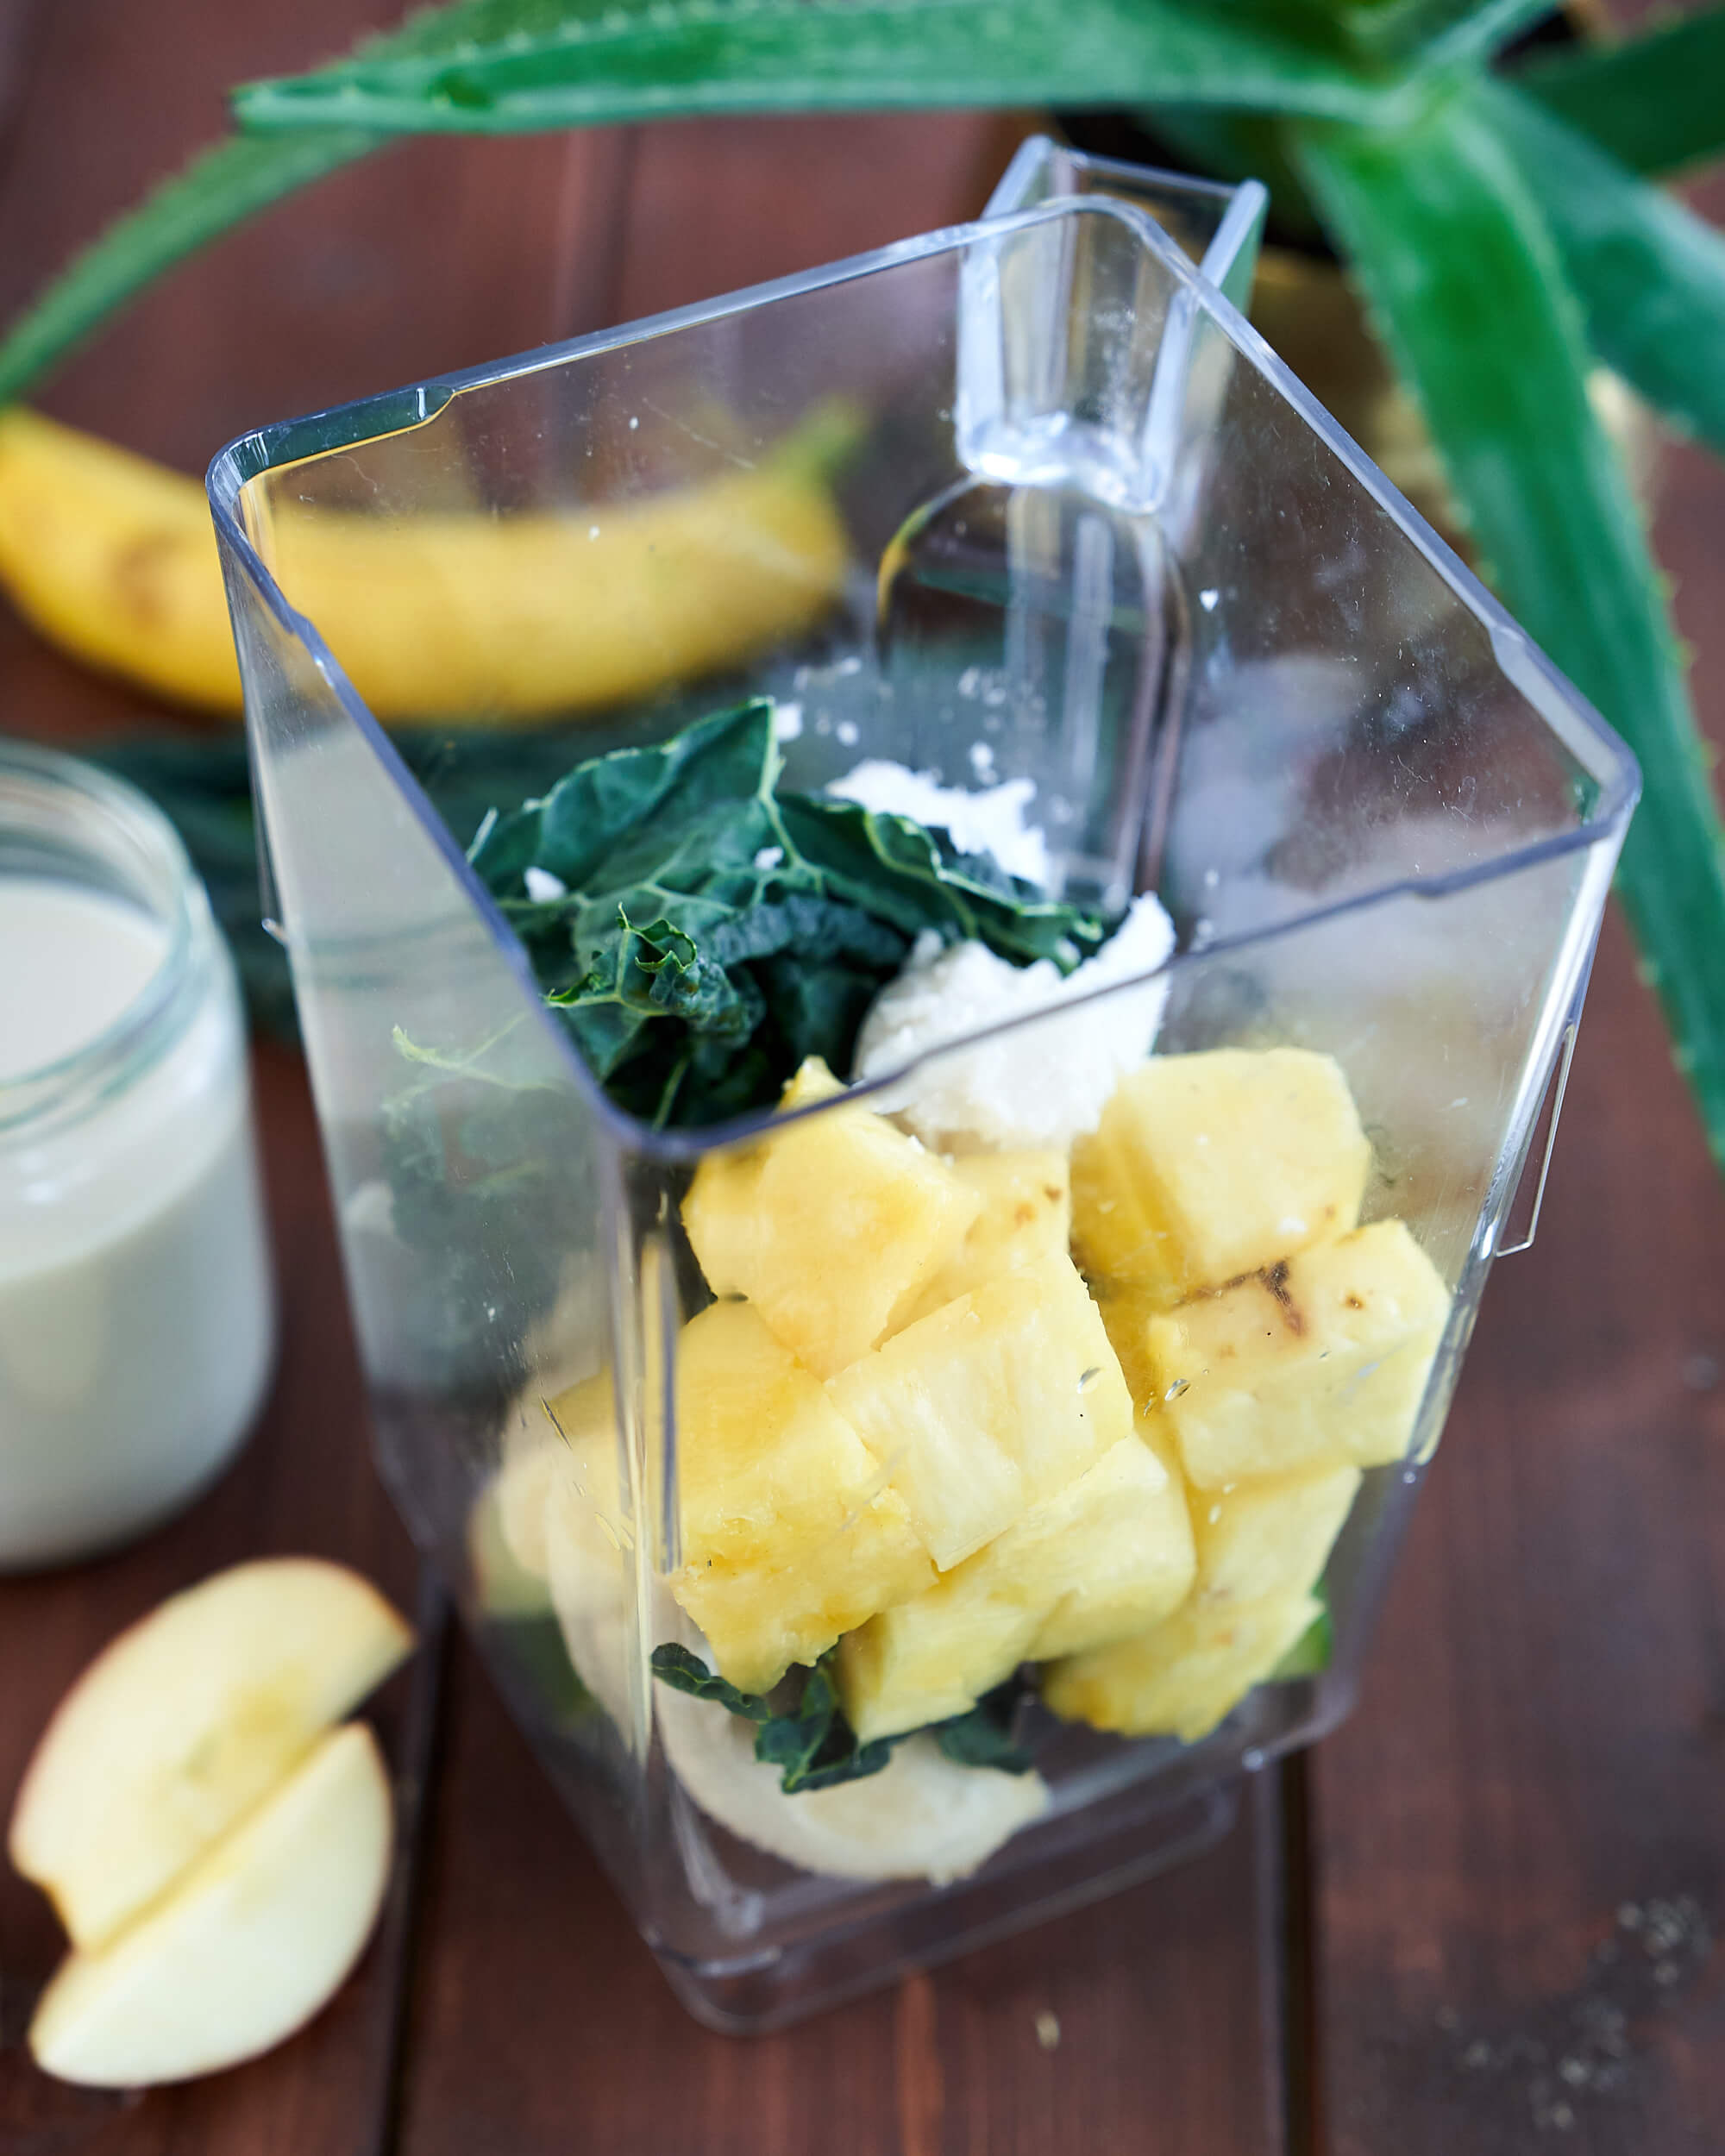 Green Aloe Smoothie with Kale, Pineapple and Banana in Blender